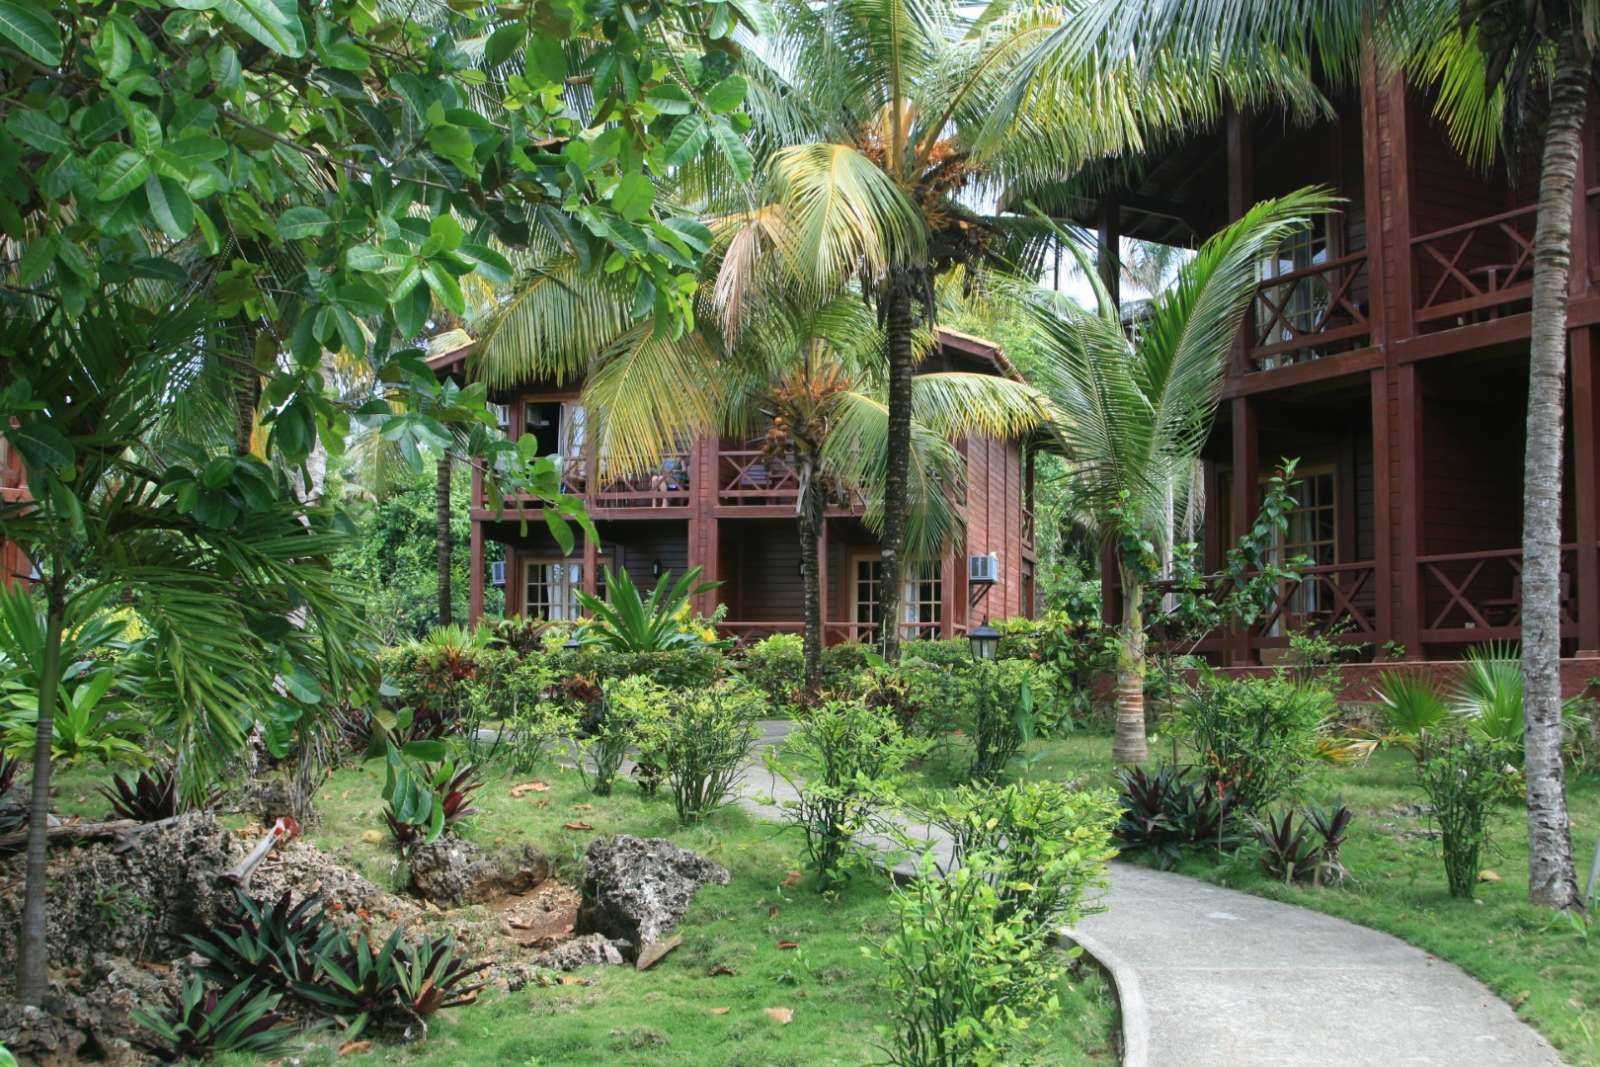 Garden and bungalows at Villa Maguana